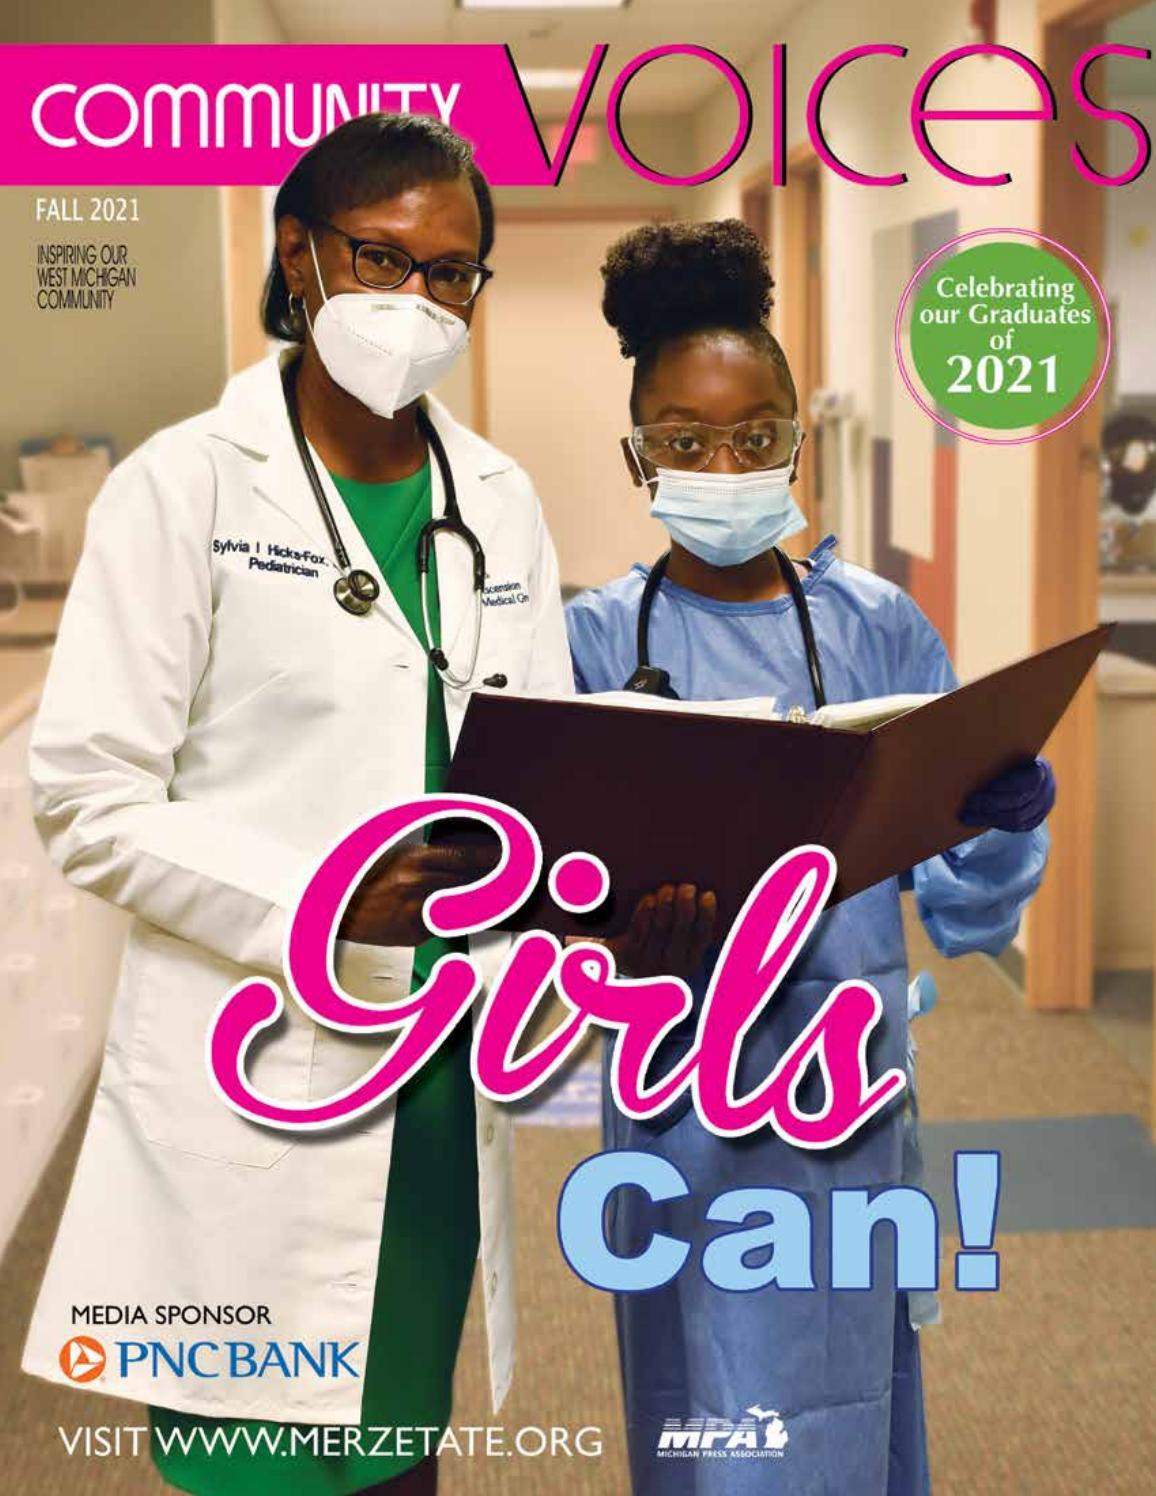 Girls Can! Magazine, from Fall 2021